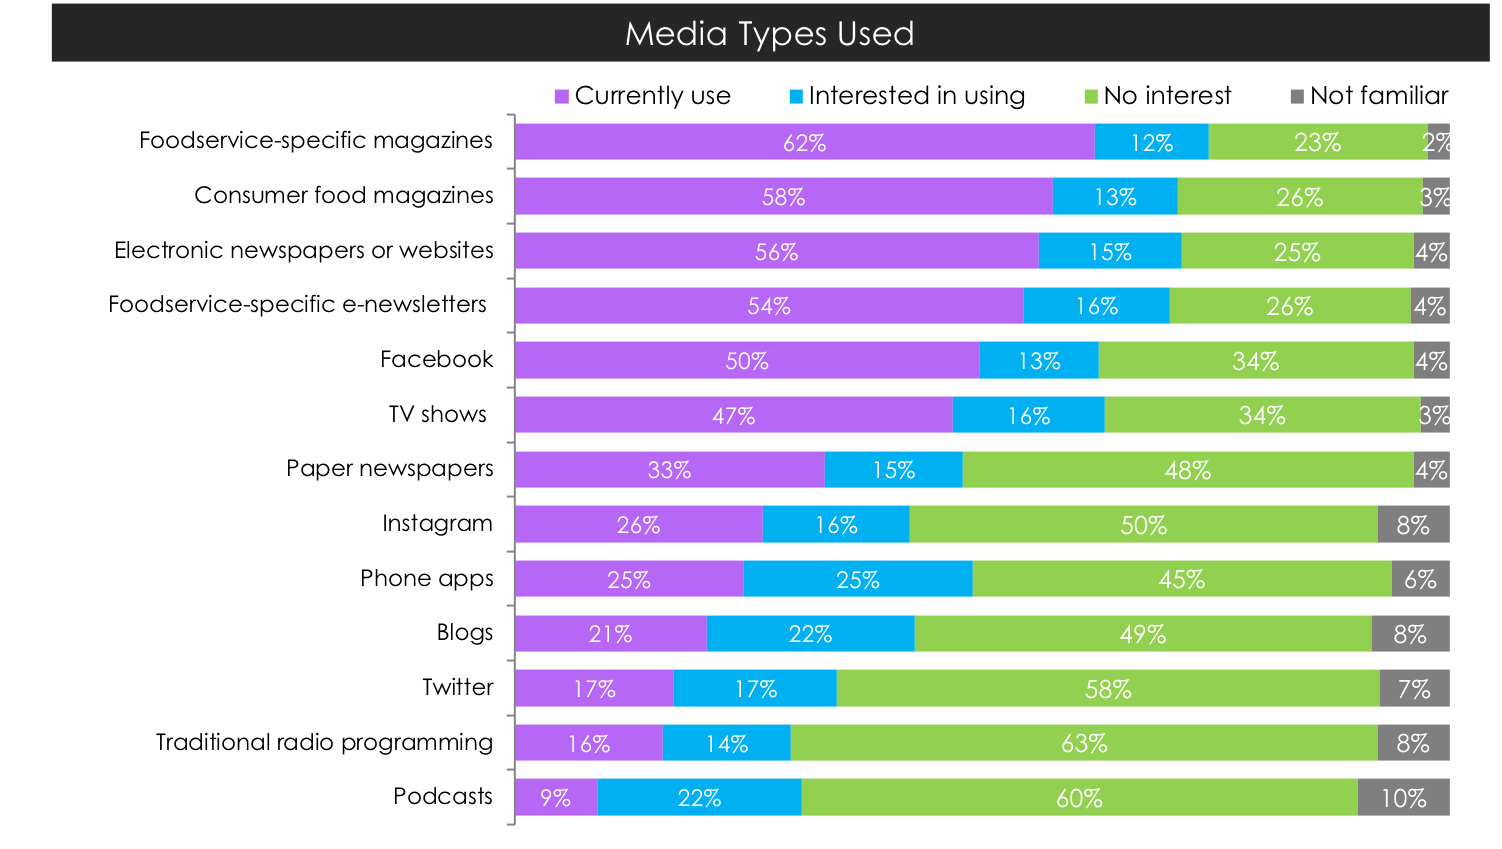 Datassential's 2017 Media Engagement study showed the most popular types of media used by foodservice operators to get information for their business.